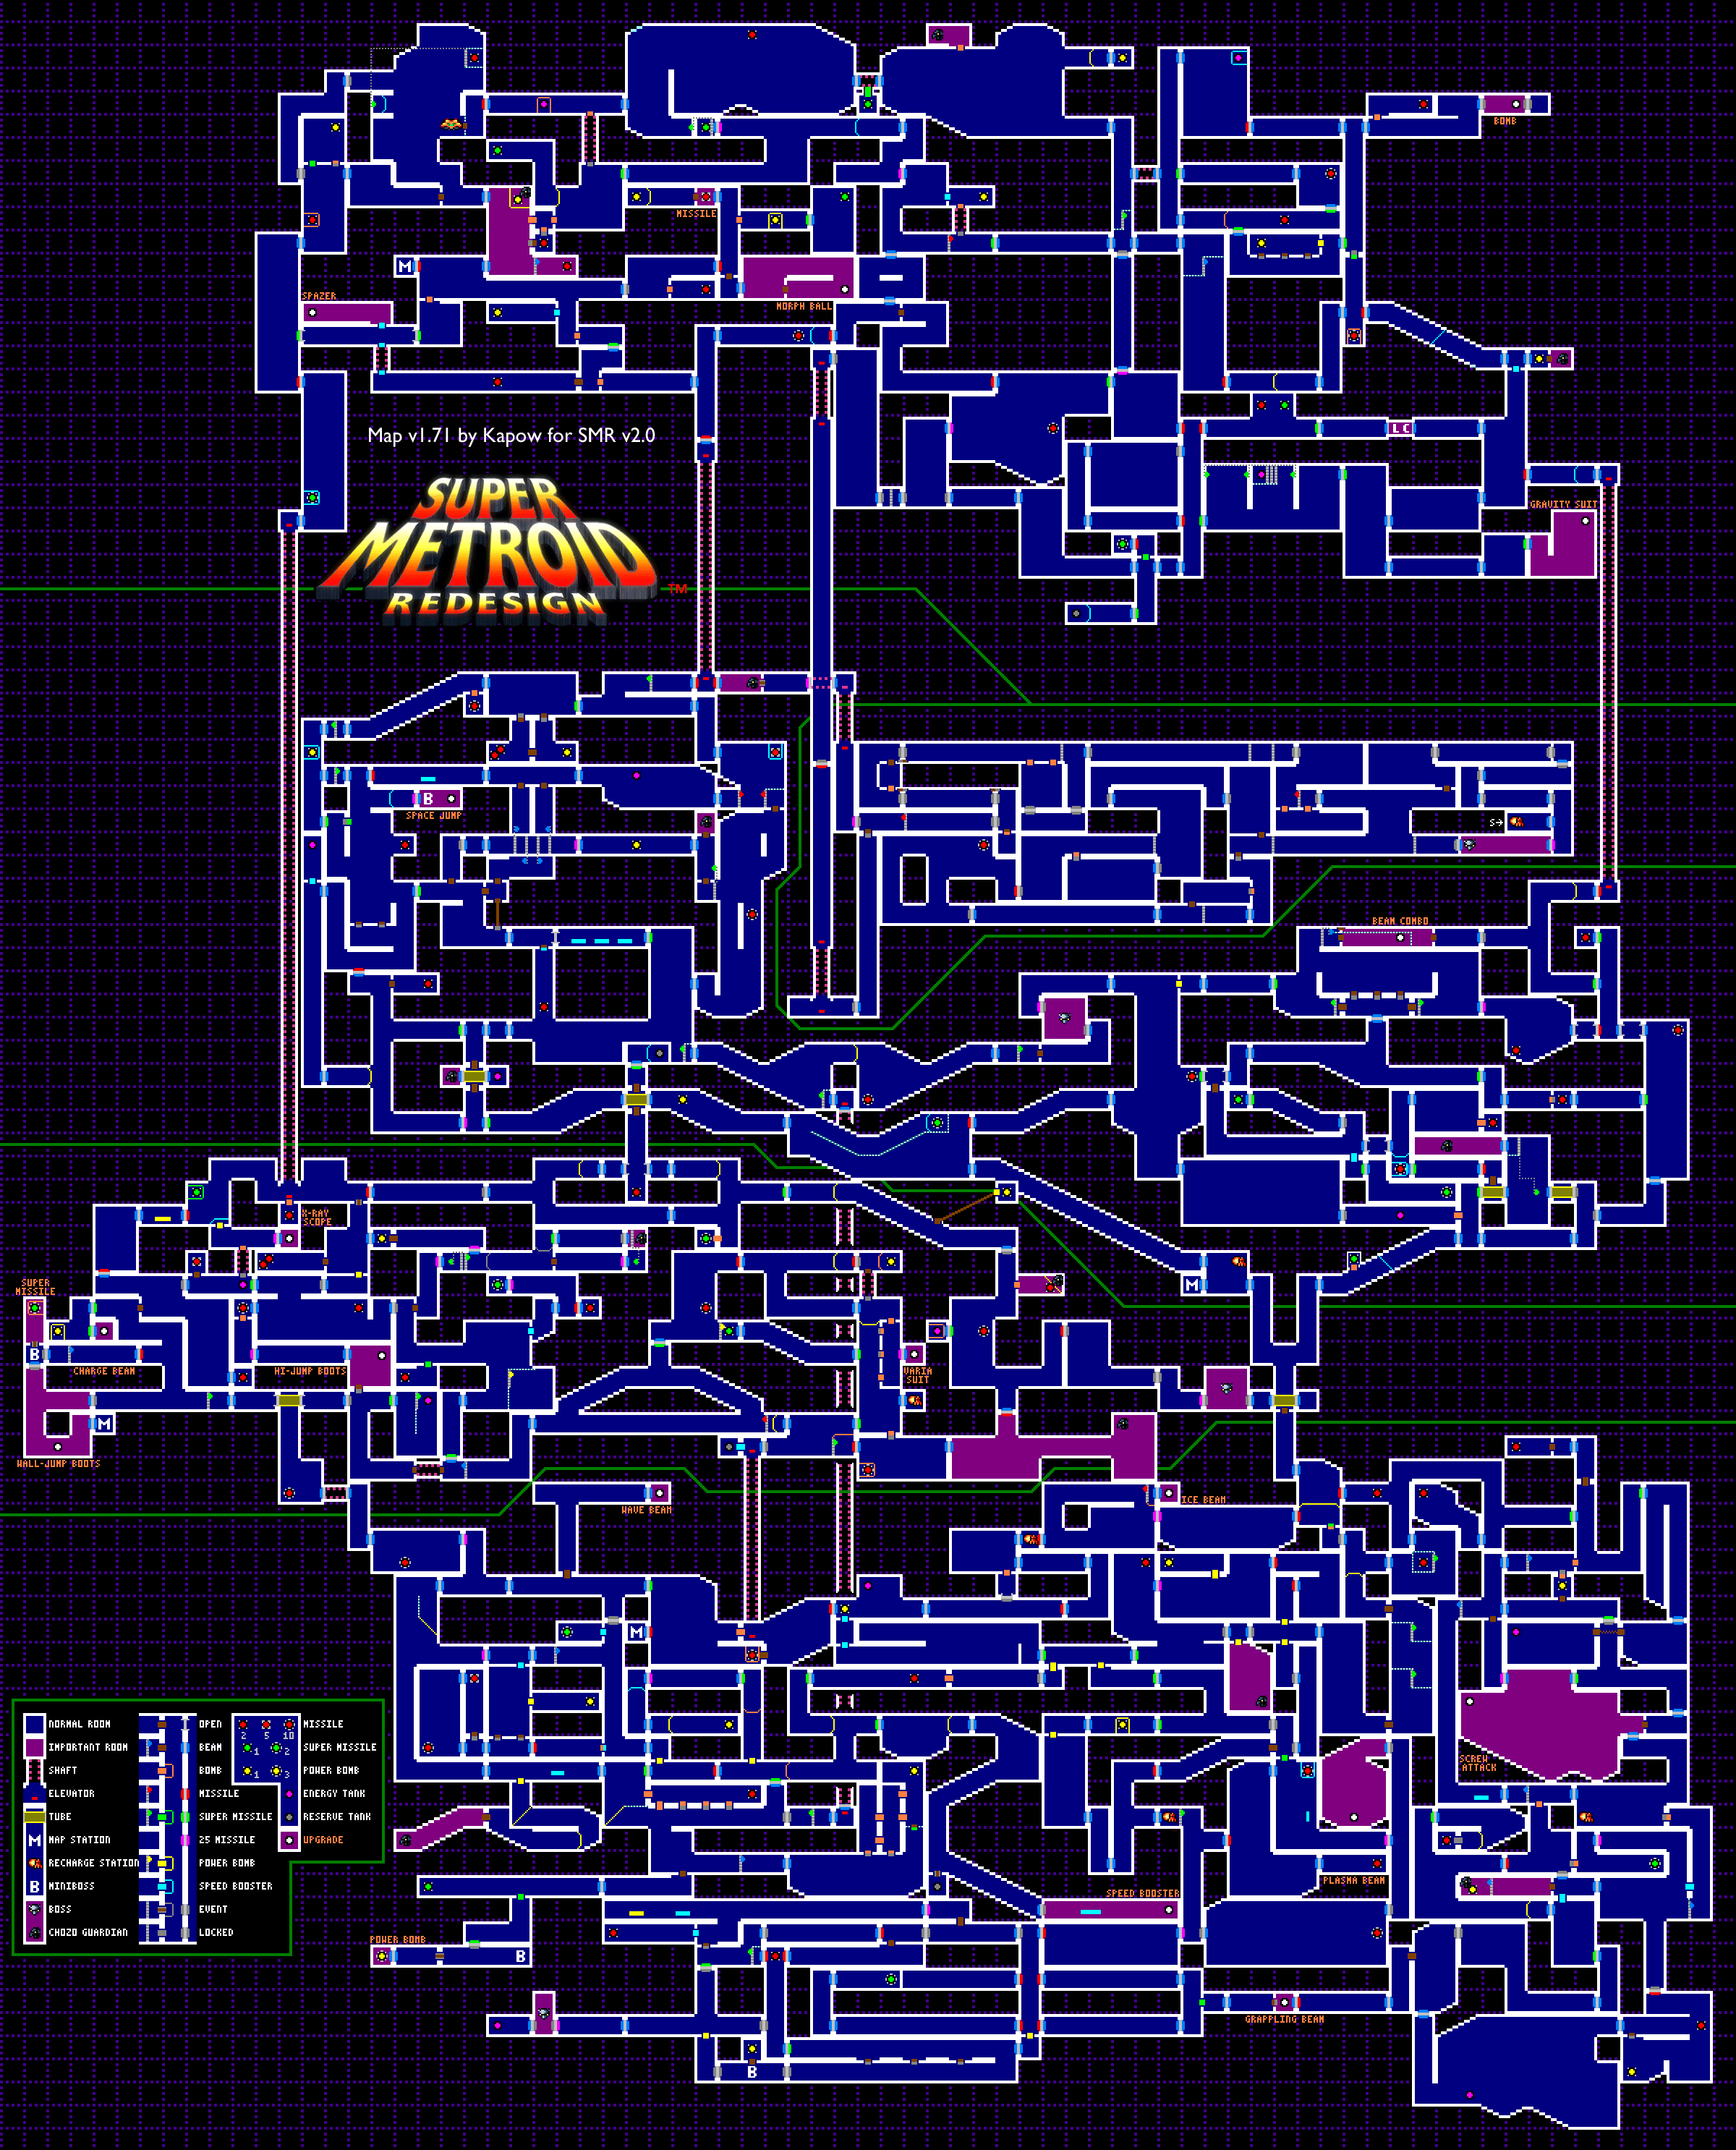 Super metroid map I spent hours scouring these maps for hidden